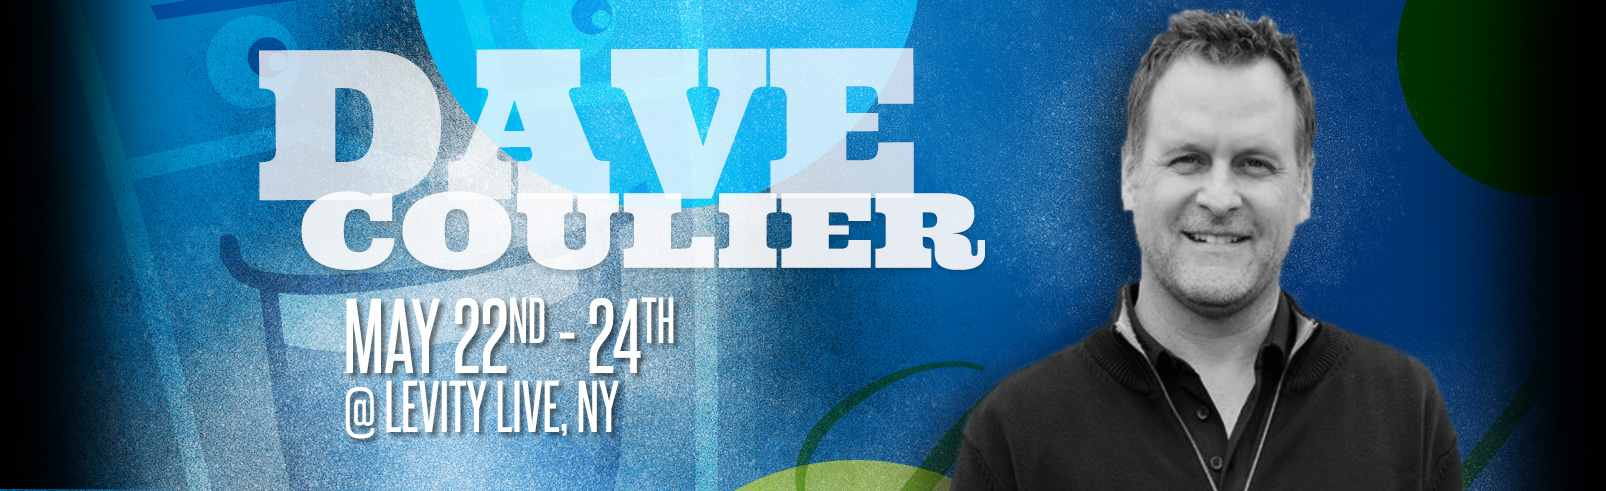 Dave Coulier @ Levity Live